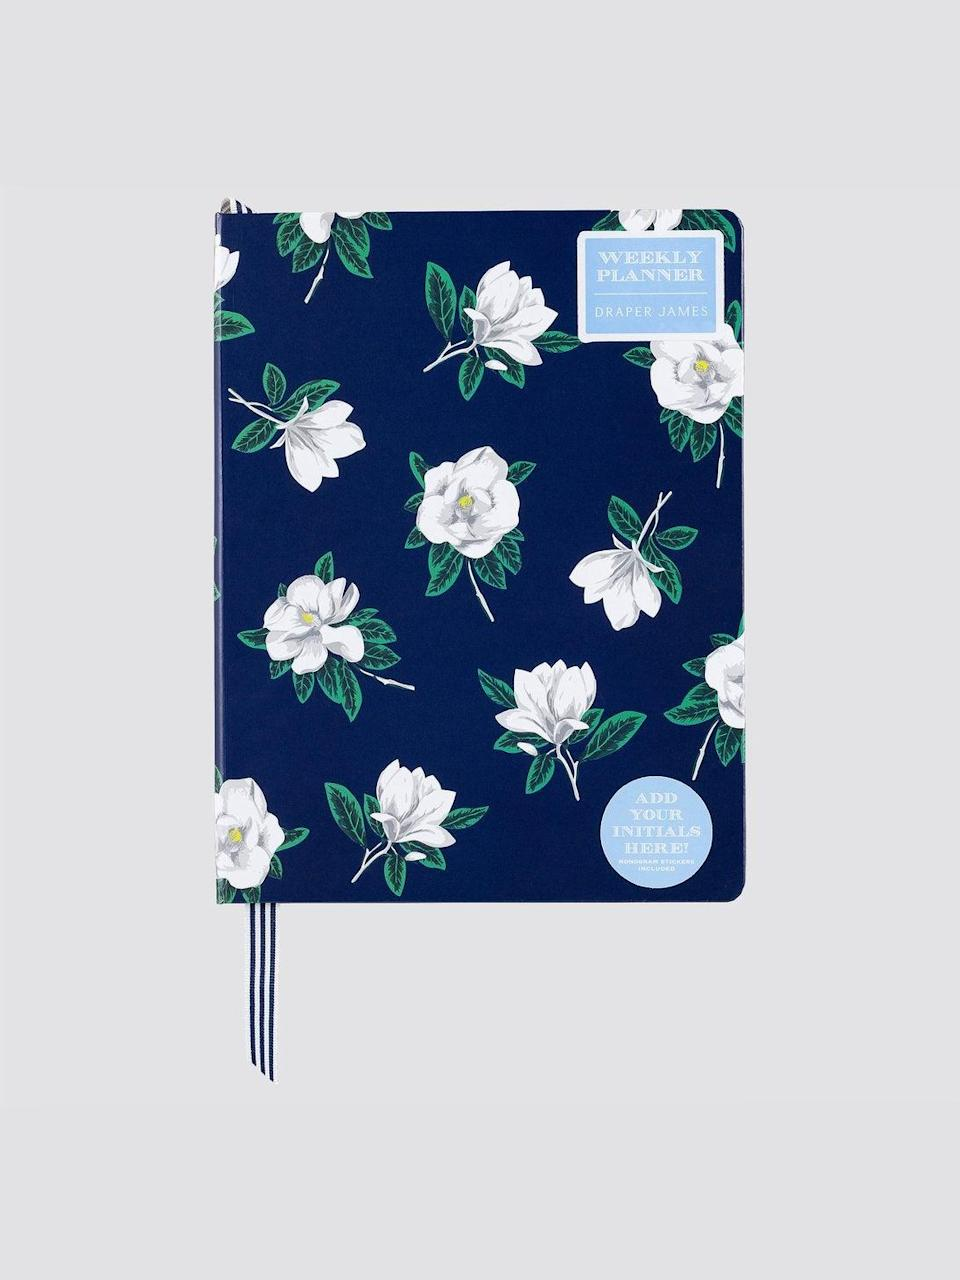 """<h3><a href=""""https://draperjames.com/products/magnolia-weekly-planner"""" rel=""""nofollow noopener"""" target=""""_blank"""" data-ylk=""""slk:Draper James Magnolia Weekly Planner"""" class=""""link rapid-noclick-resp"""">Draper James Magnolia Weekly Planner</a></h3> <br>The undated year, month, and week views of this planner mean you can use it whenever and however it suits your schedule and organization goals. There are even monogram stickers for personalization to give it that extra-special touch. <br><br><strong>Draper James</strong> Magnolia Weekly Planner, $, available at <a href=""""https://go.skimresources.com/?id=30283X879131&url=https%3A%2F%2Fdraperjames.com%2Fproducts%2Fmagnolia-weekly-planner"""" rel=""""nofollow noopener"""" target=""""_blank"""" data-ylk=""""slk:Draper James"""" class=""""link rapid-noclick-resp"""">Draper James</a><br>"""